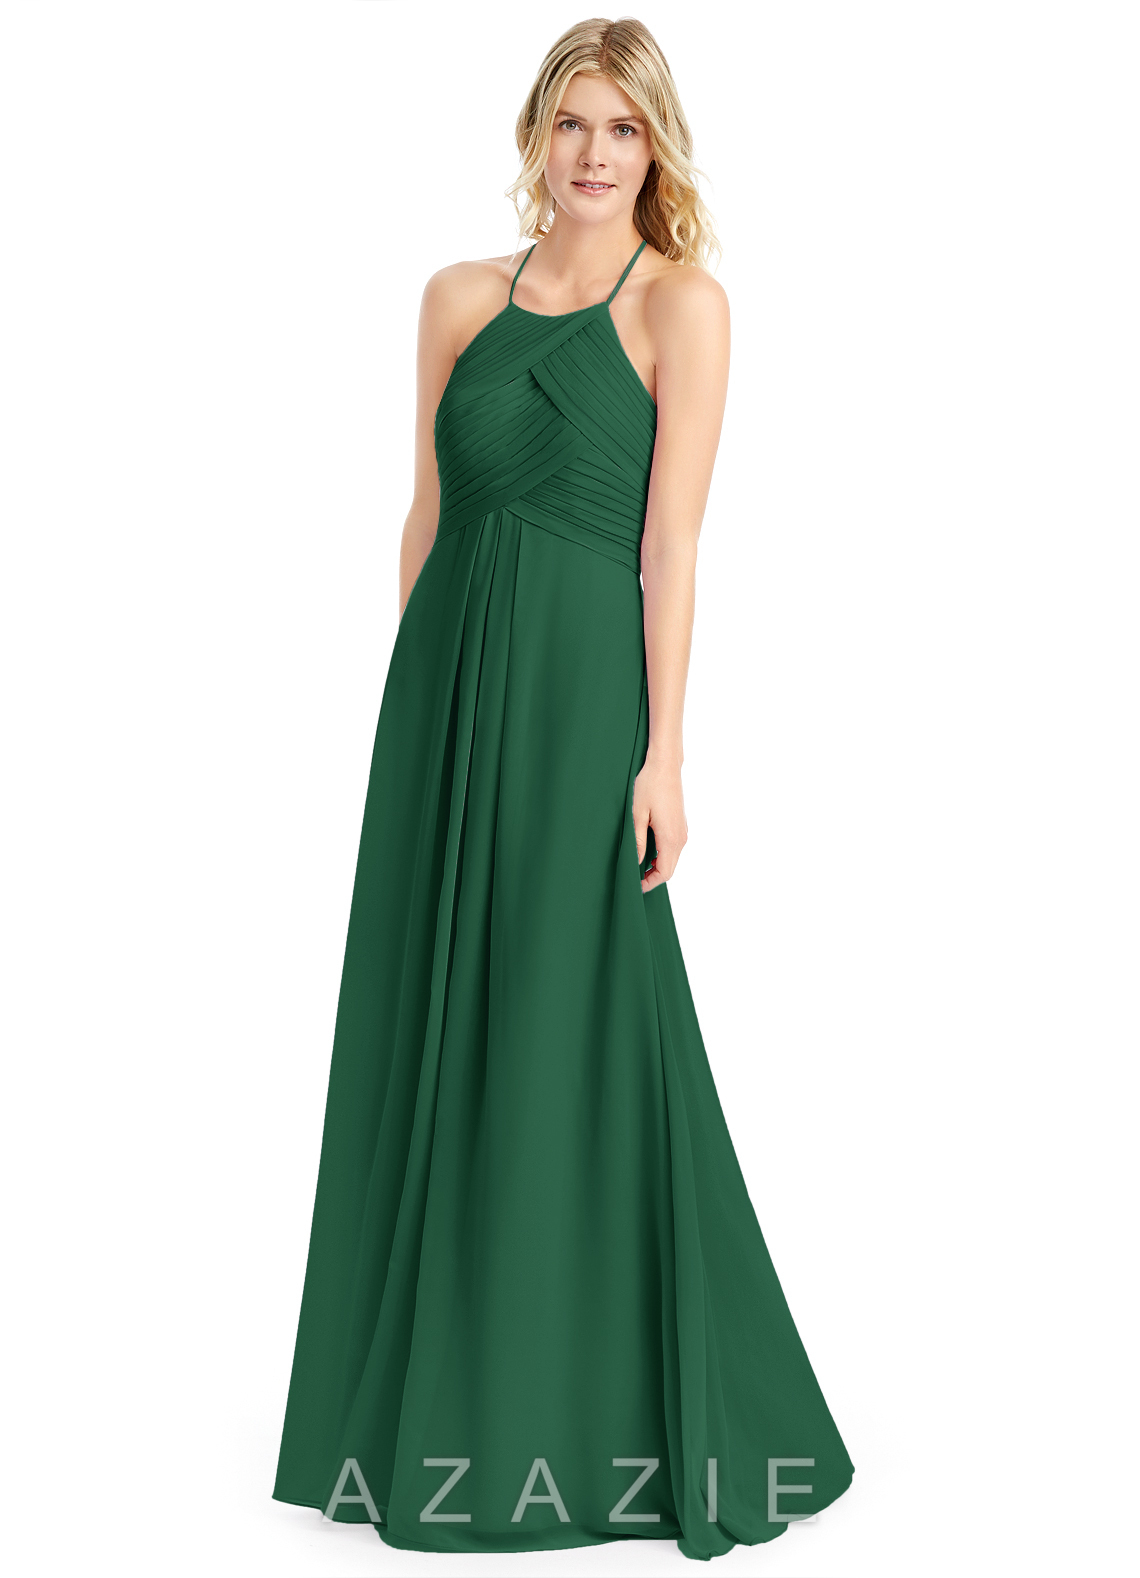 Dark Green Bridesmaid Dresses &amp- Dark Green Gowns - Azazie